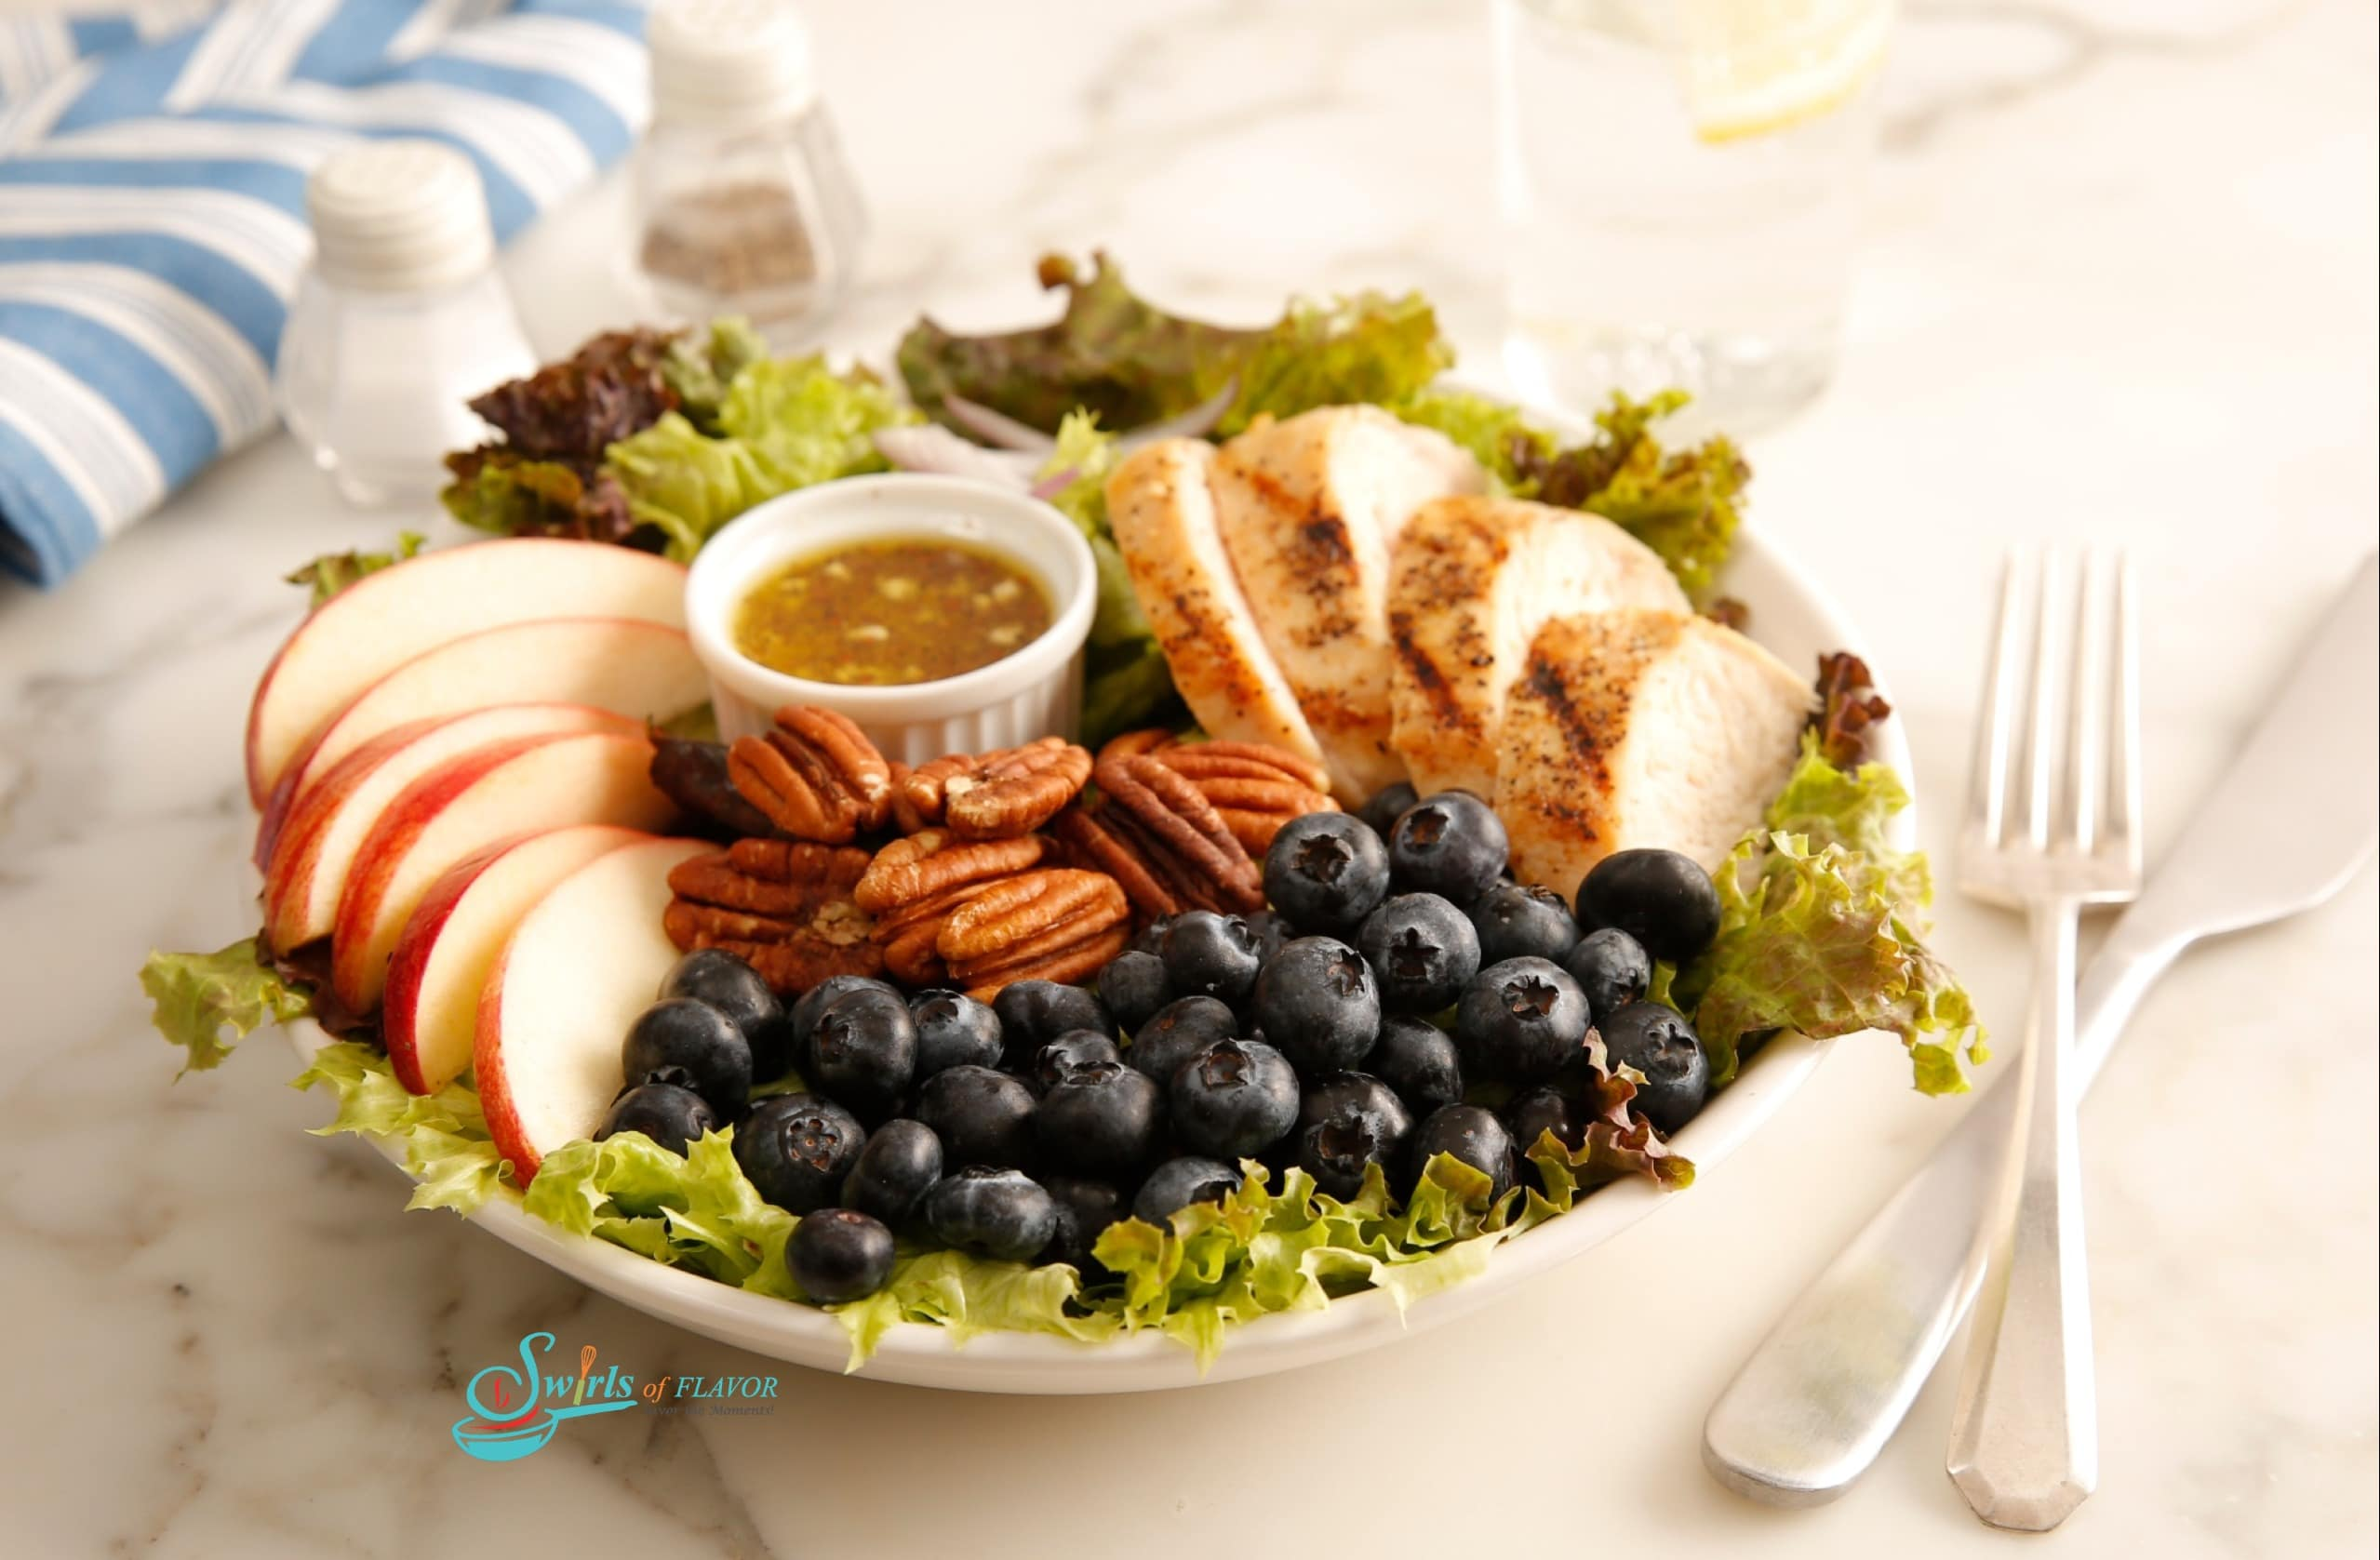 Chicken salad with apples, pecans and blueberries on bed of lettuce